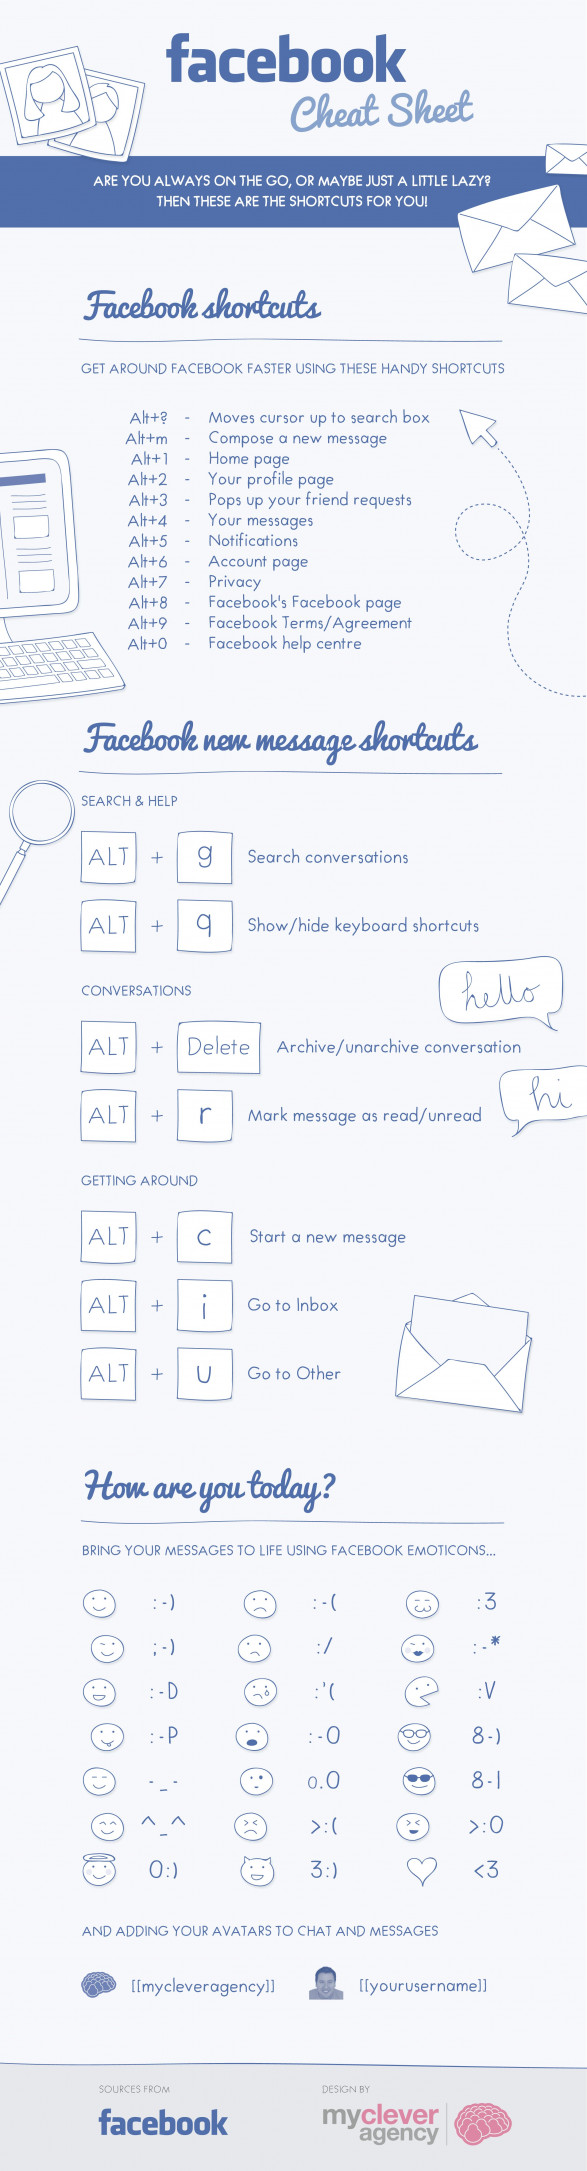 Facebook Cheat Sheet - Shortcuts